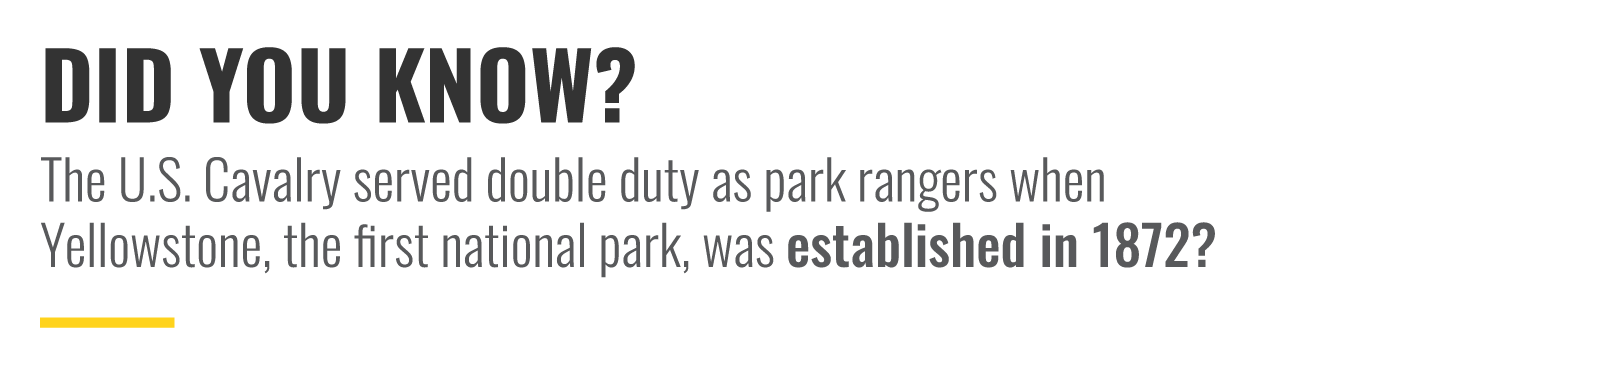 Did you know the U.S. Cavalry served double duty as park rangers when Yellowstone, the first national park, was established in 1872?